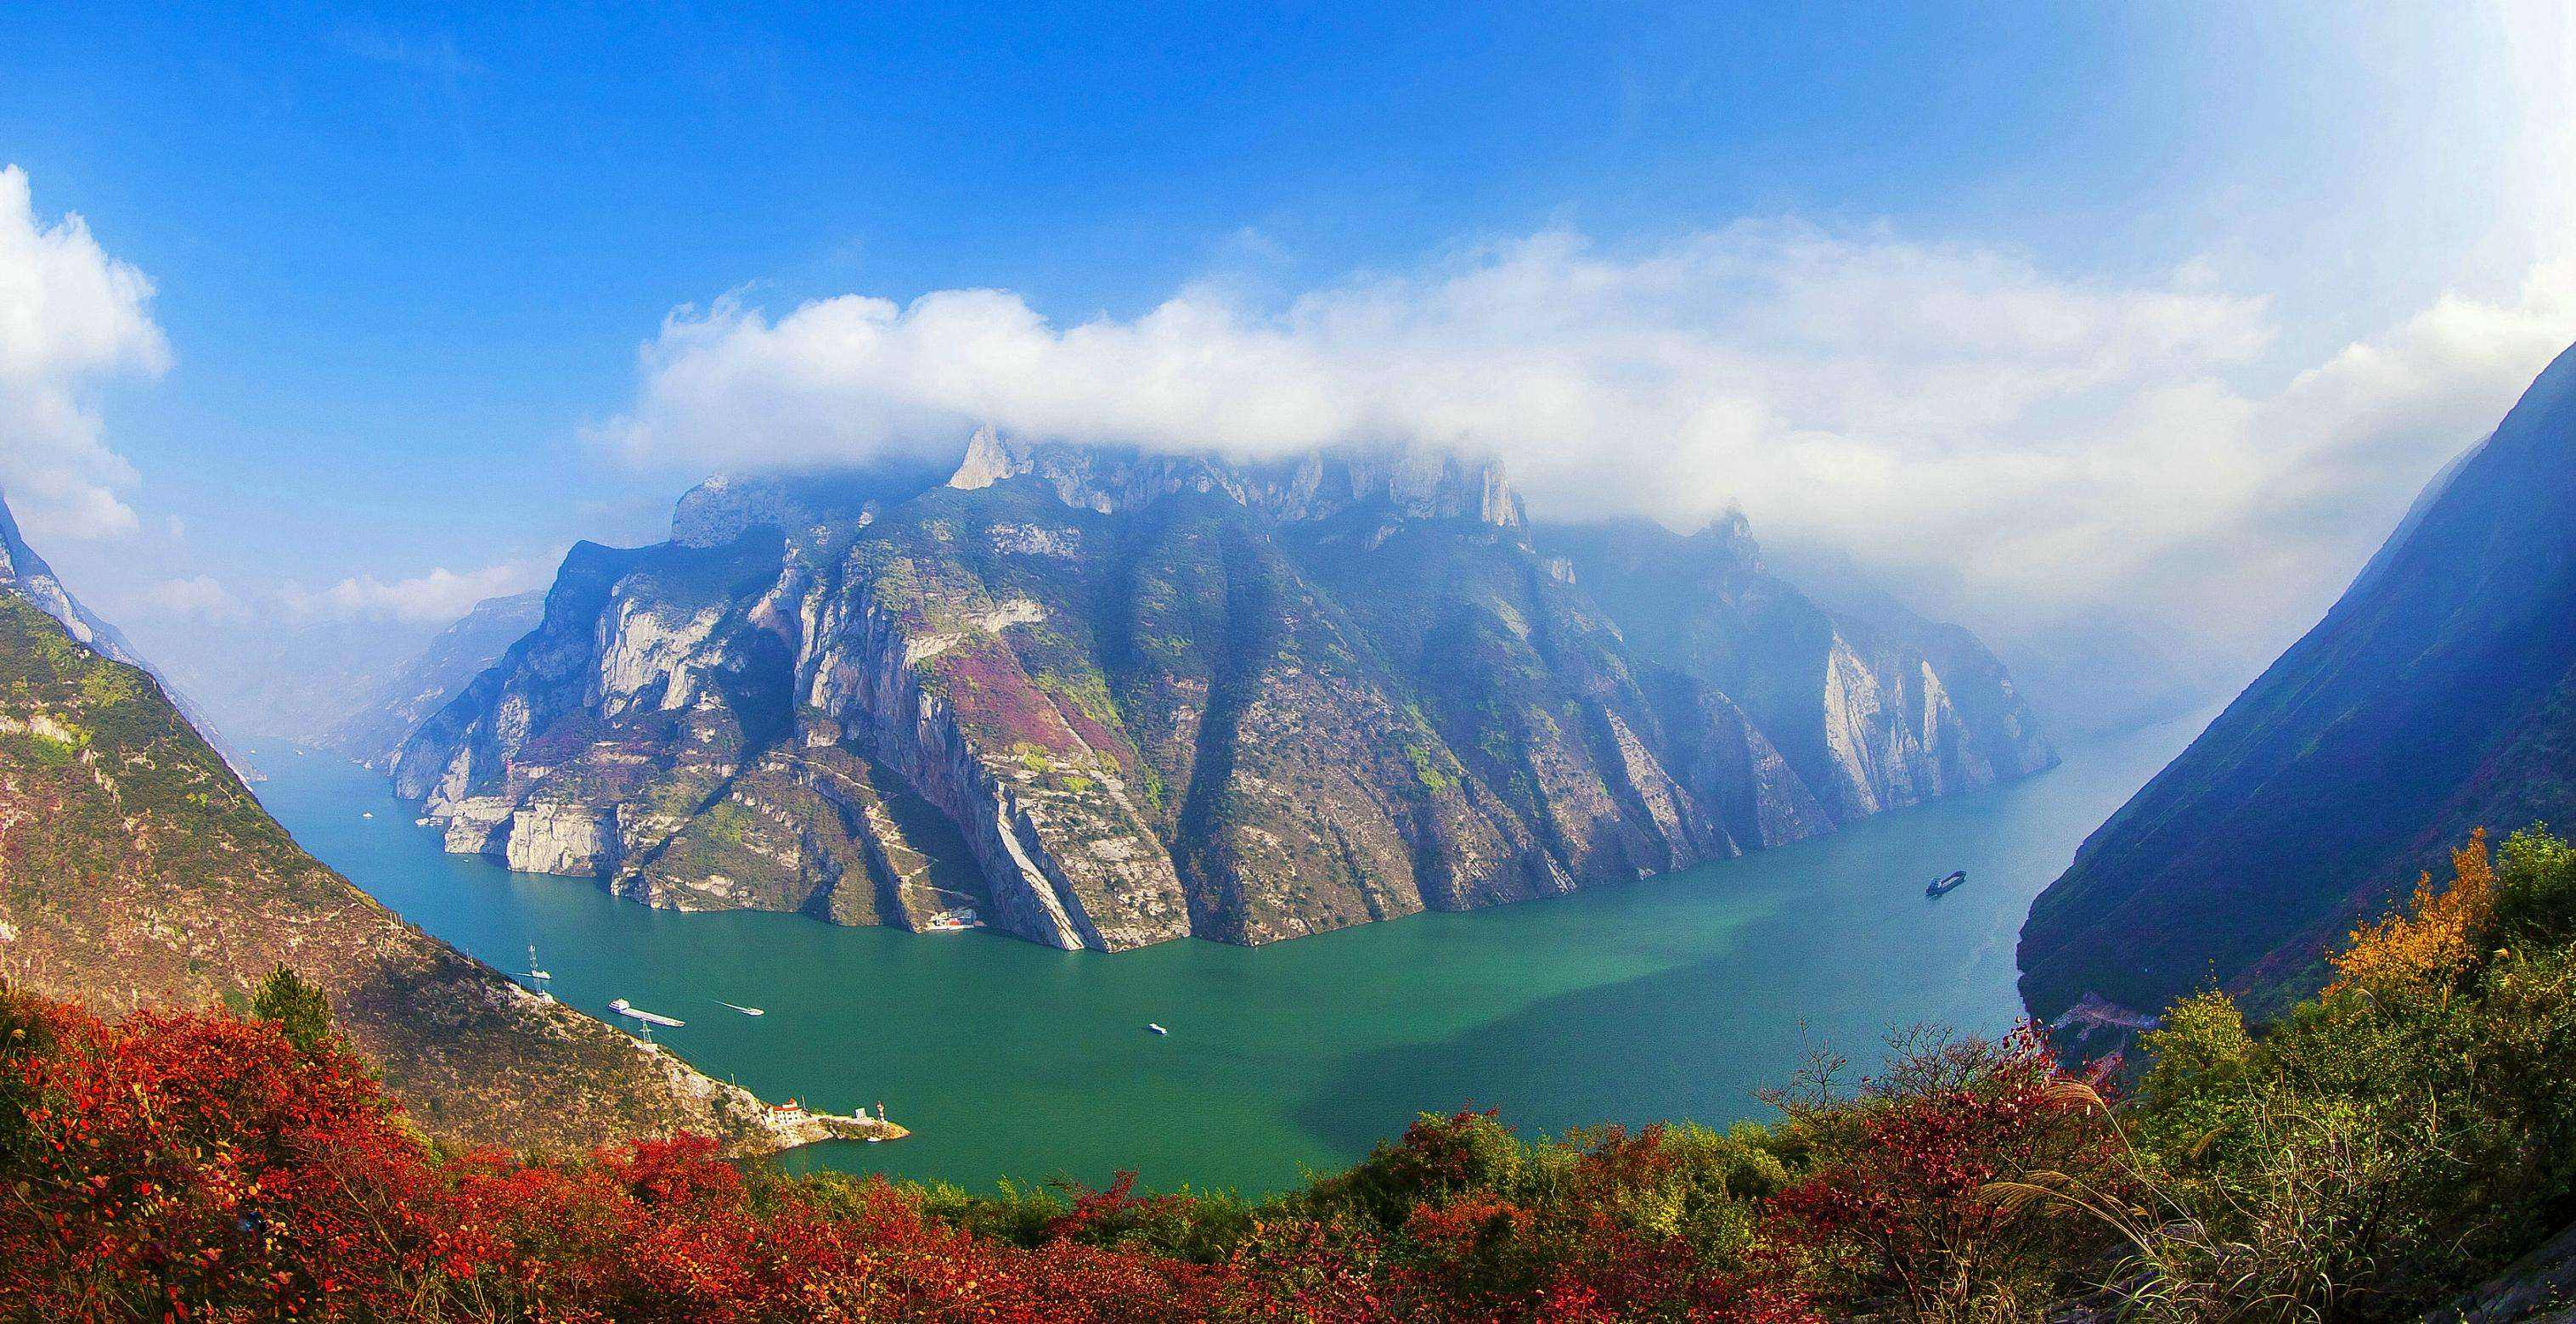 Magnificent Wu Gorge